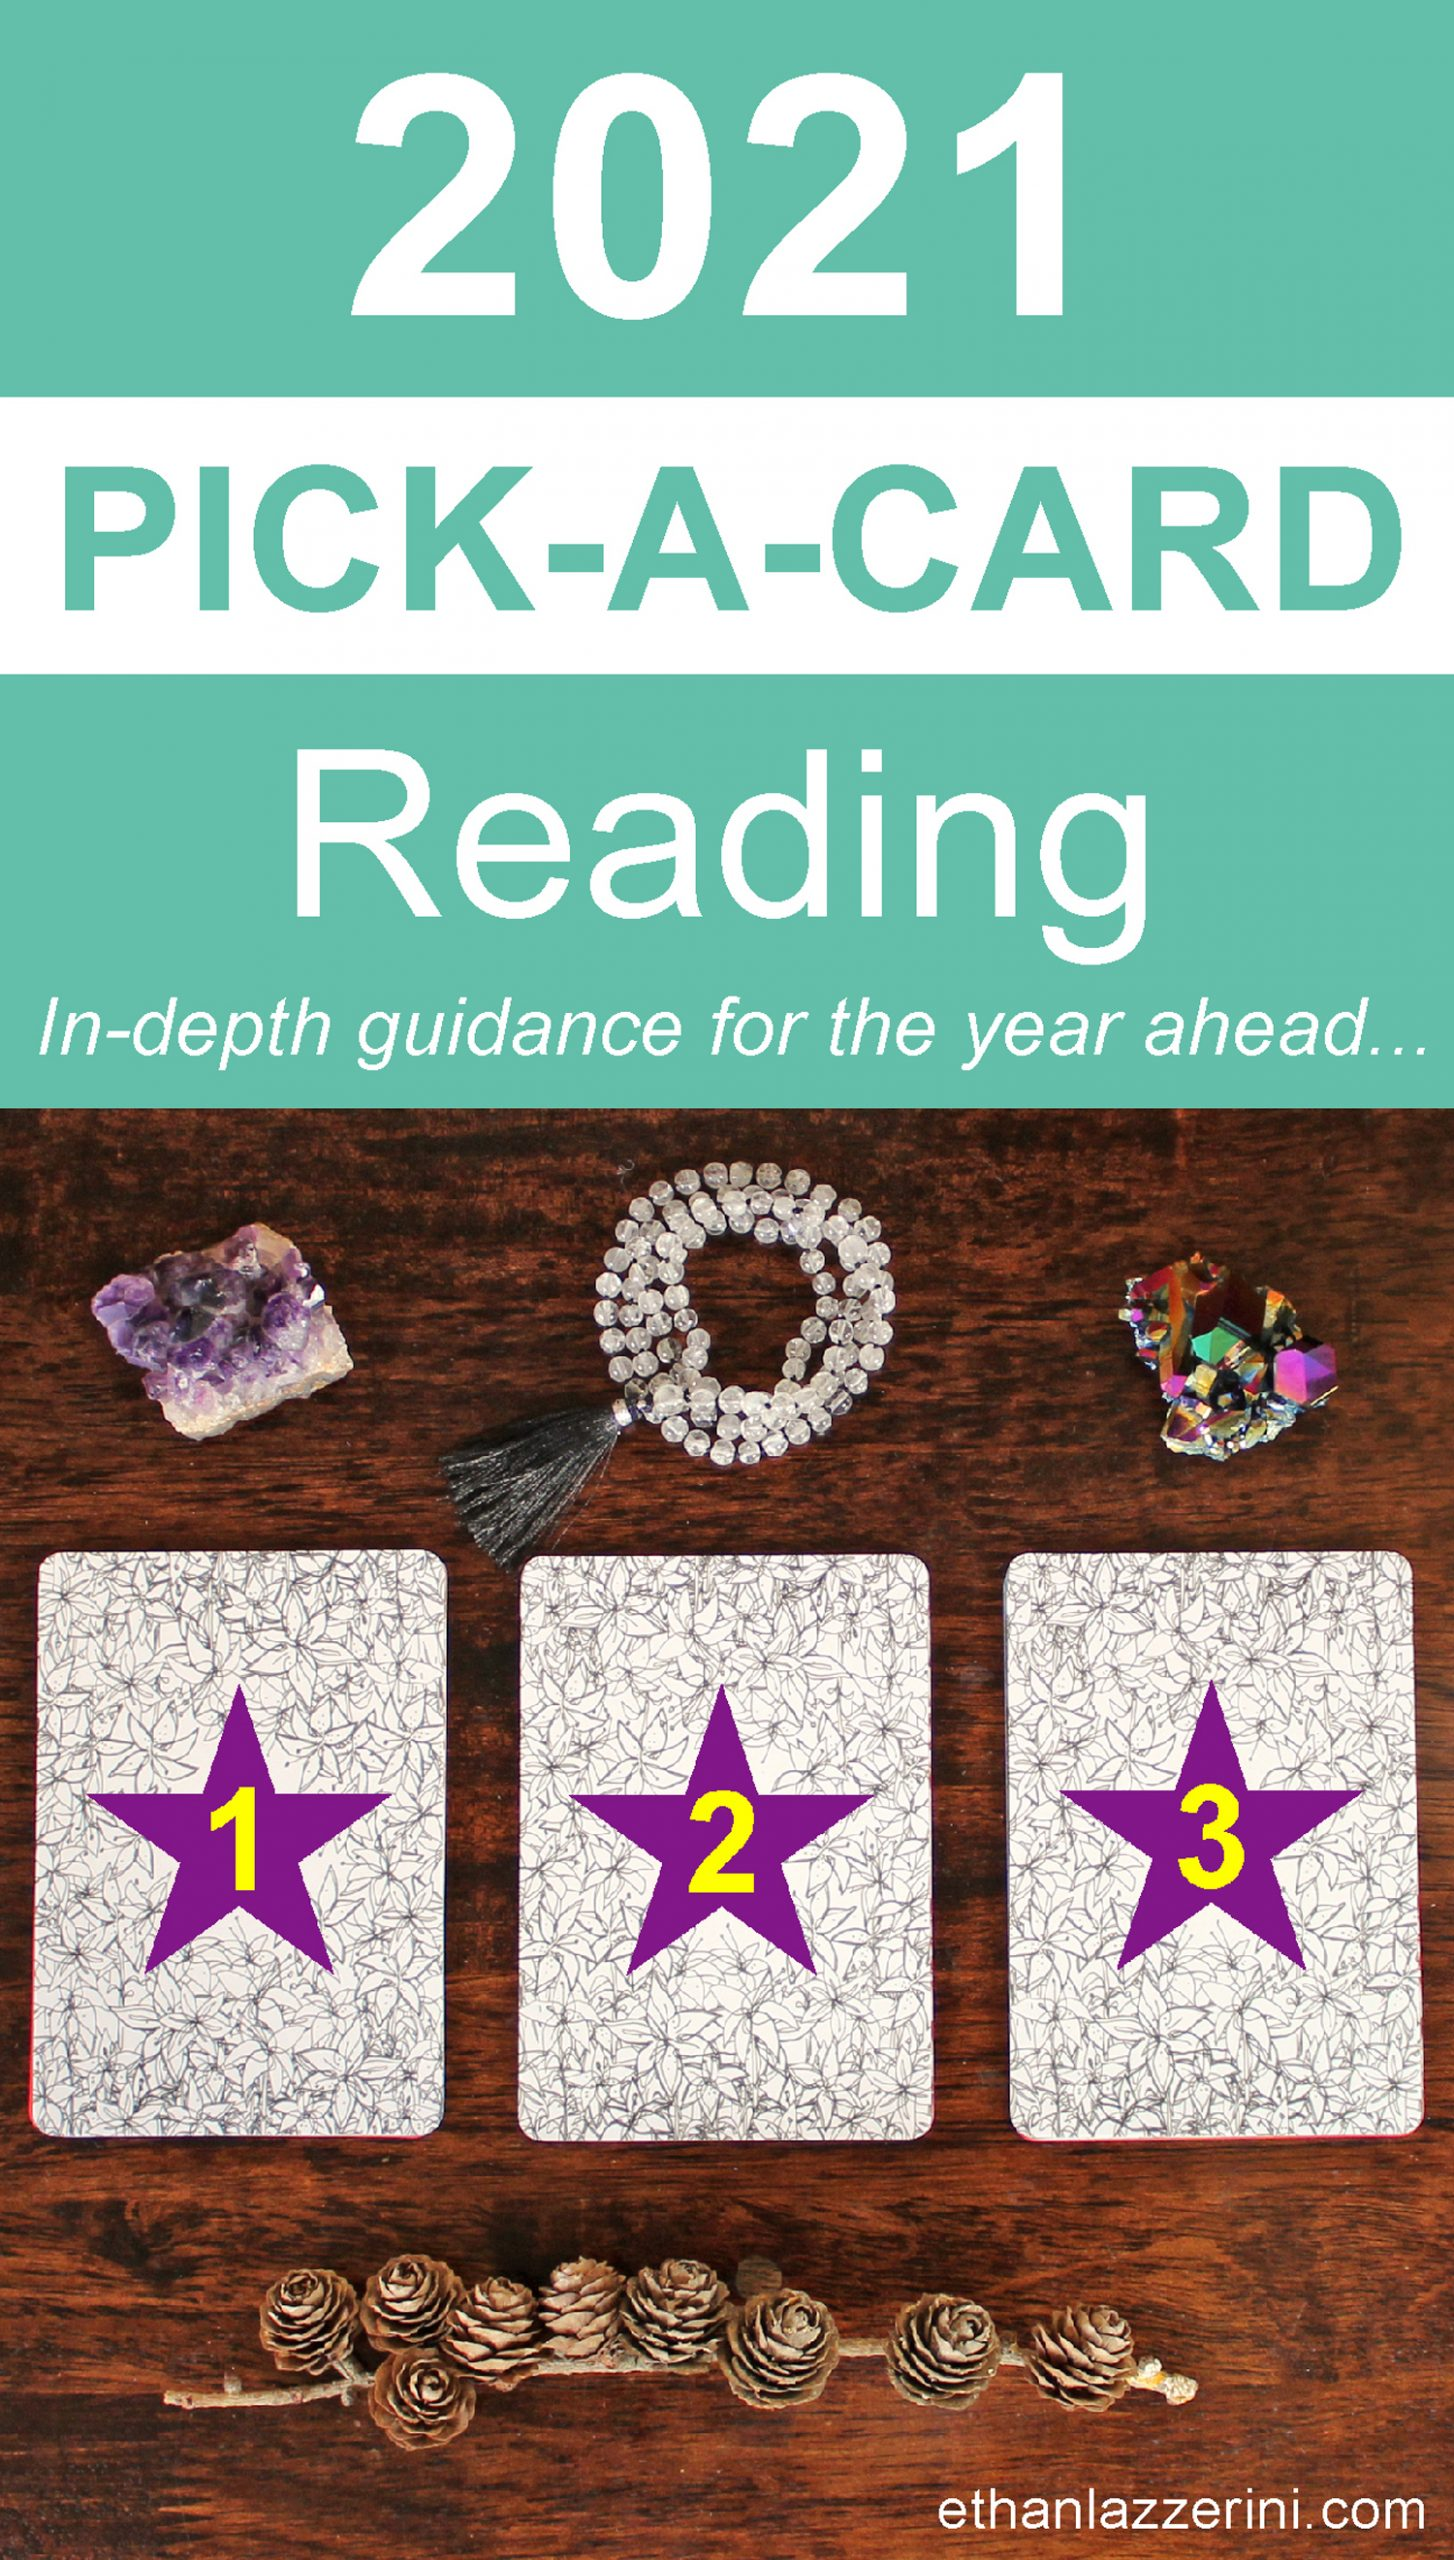 2021 Reading - pick-a-card